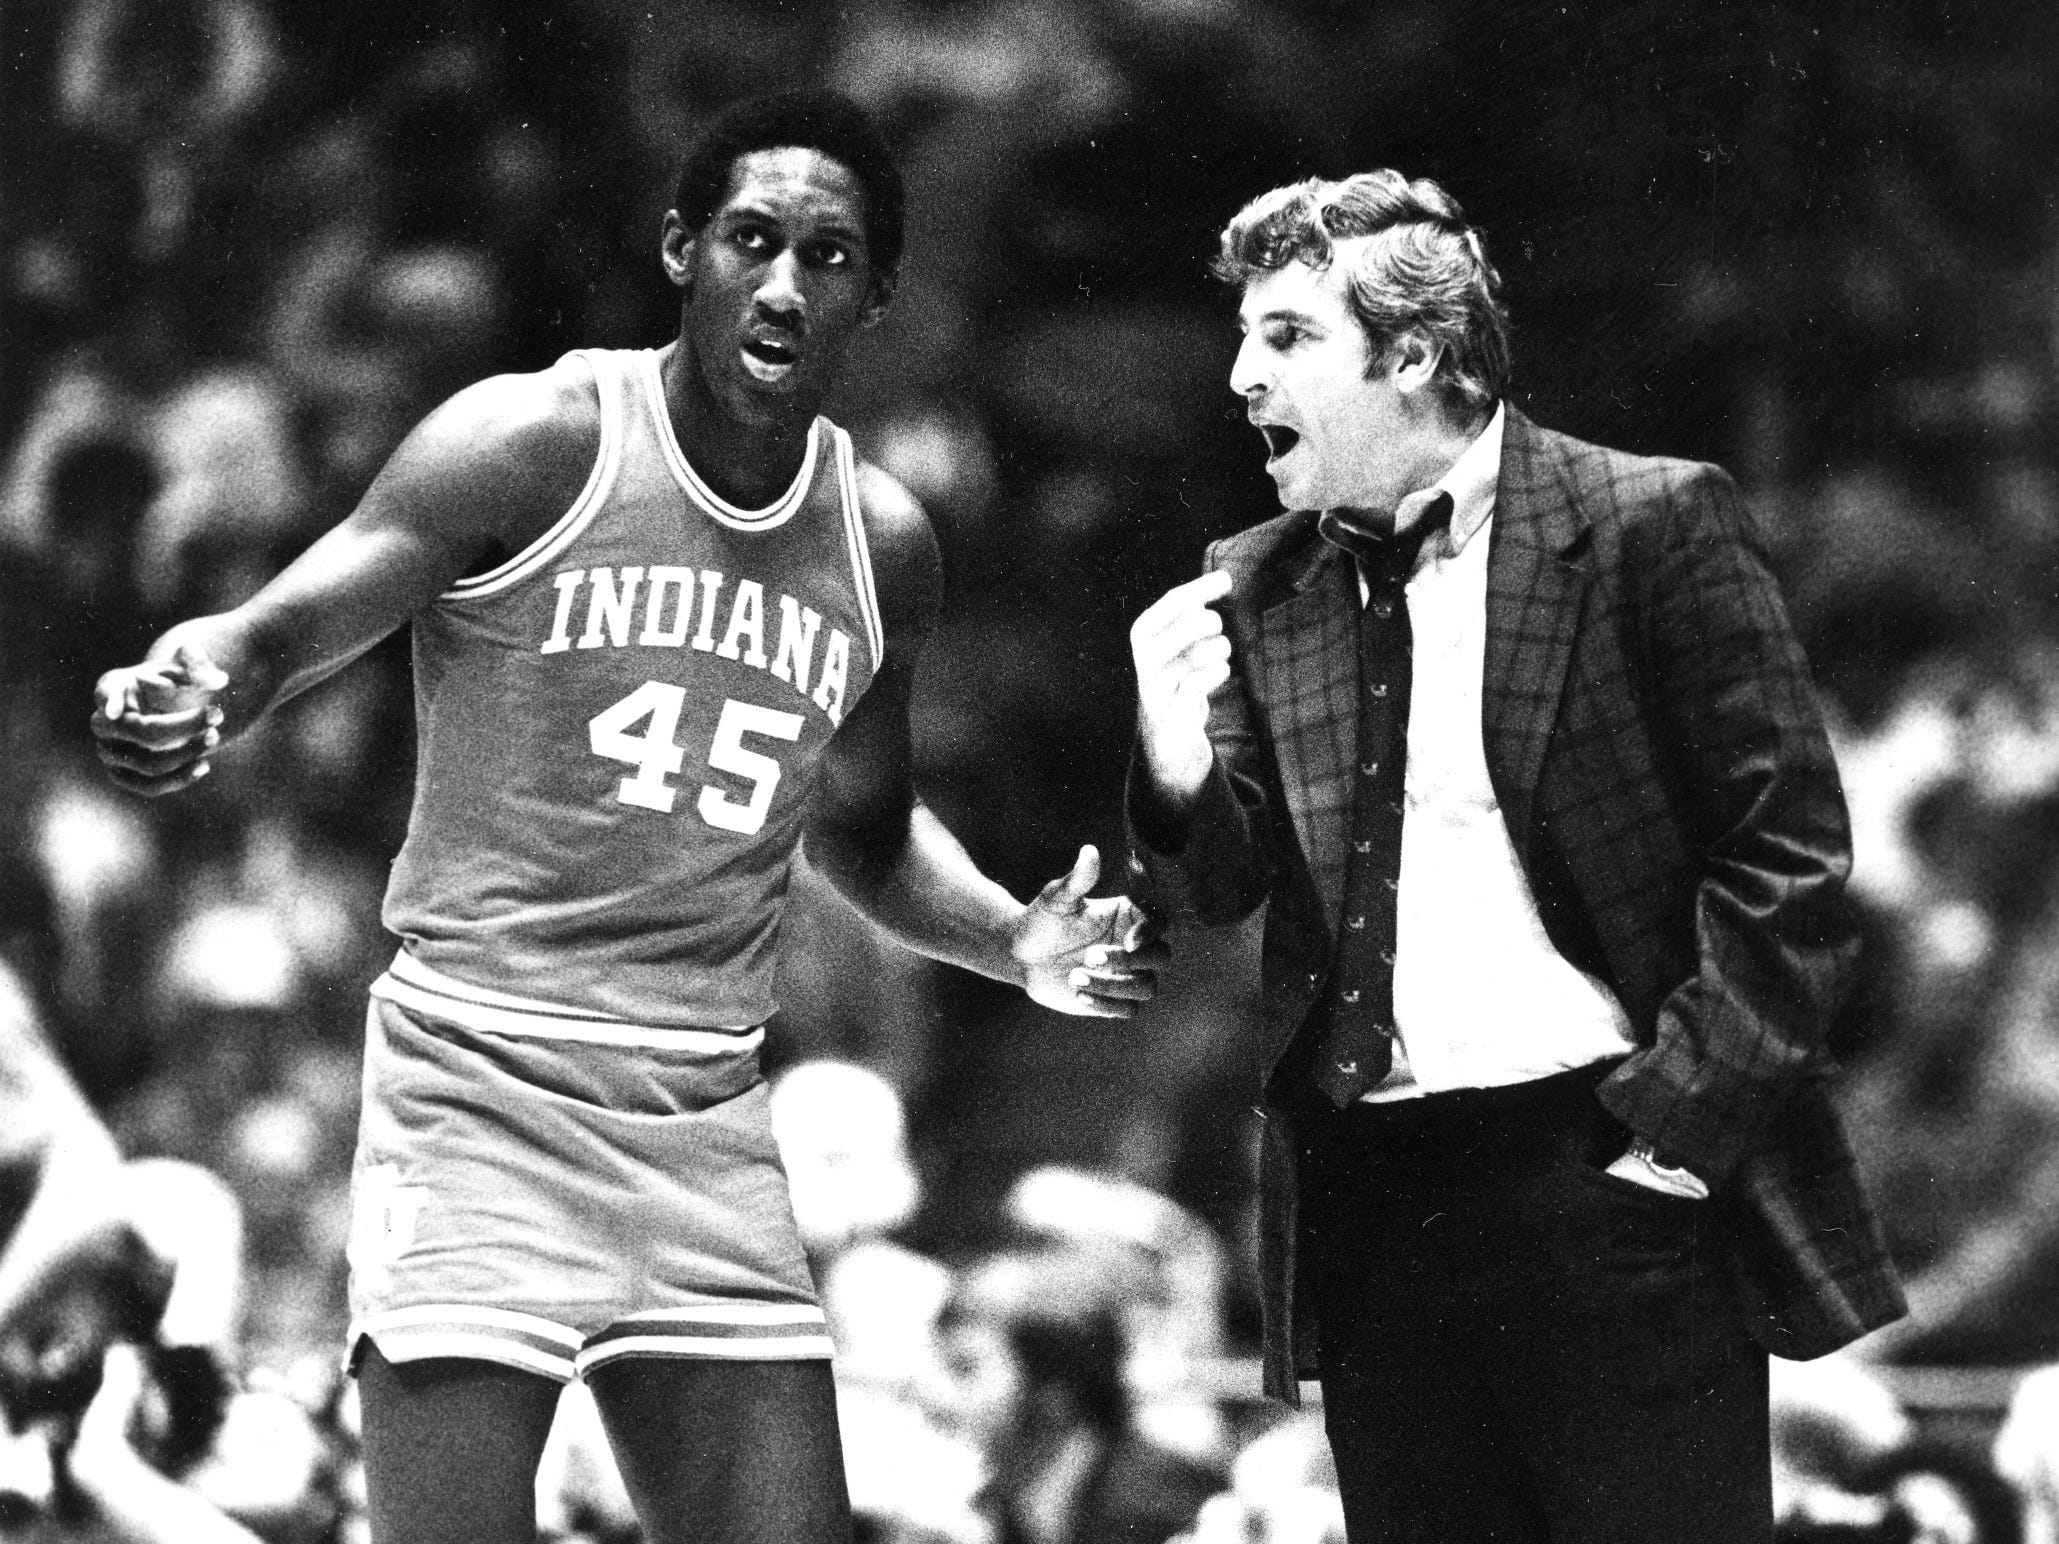 Indiana's Ray Tolbert gets some words from his coach Bobby Knight during the NCAA semi-finals, in Philadelphia, on March 29, 1981.